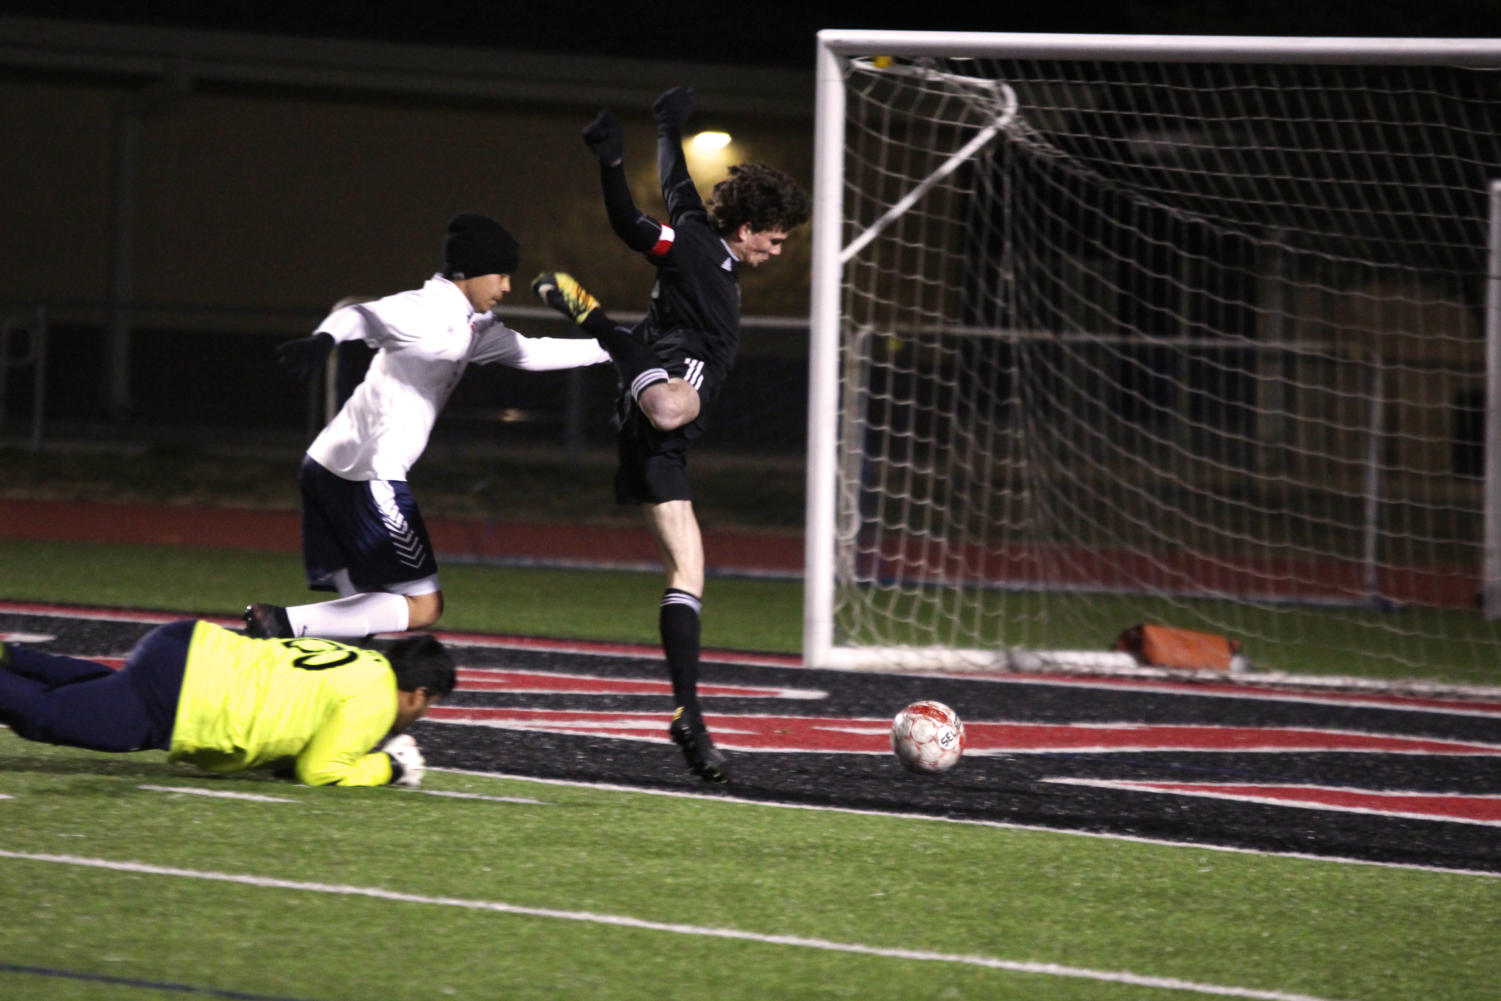 Senior forward Benji Merrick scores a goal after evading the goalie.